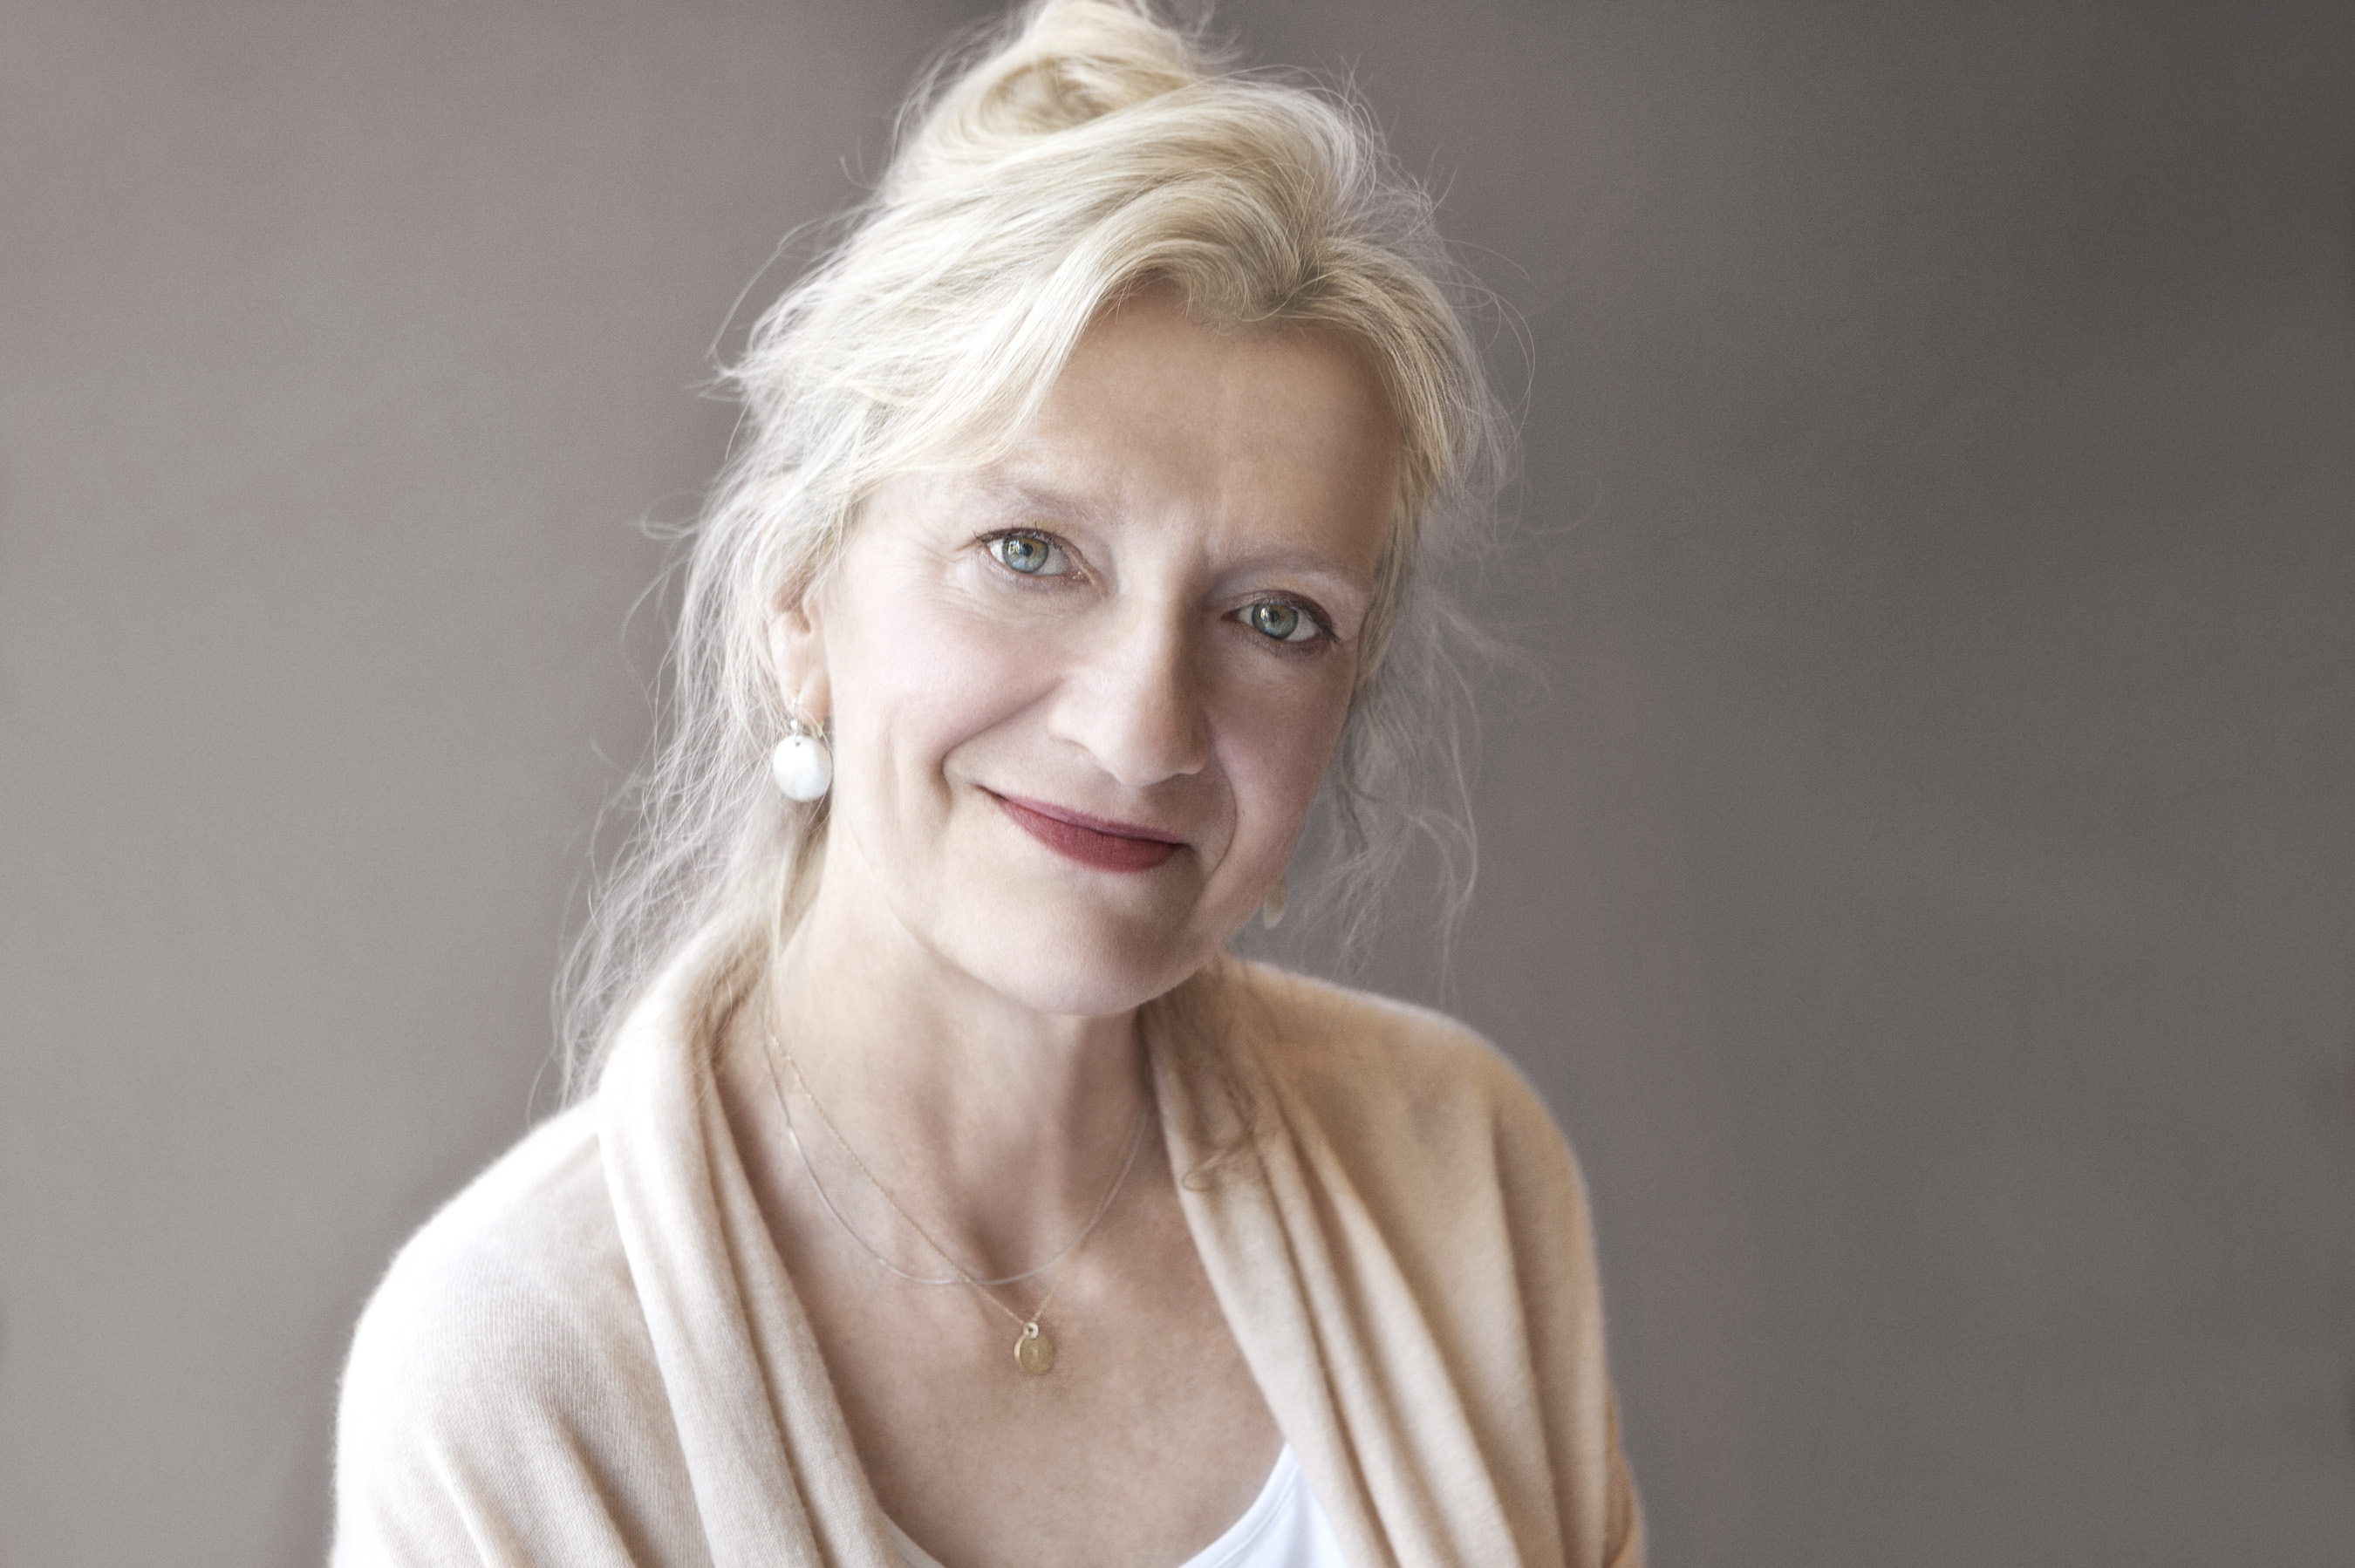 In 2009, Elizabeth Strout won a Pulitzer Prize for Olive Kitteridge, a collection of interconnected stories.